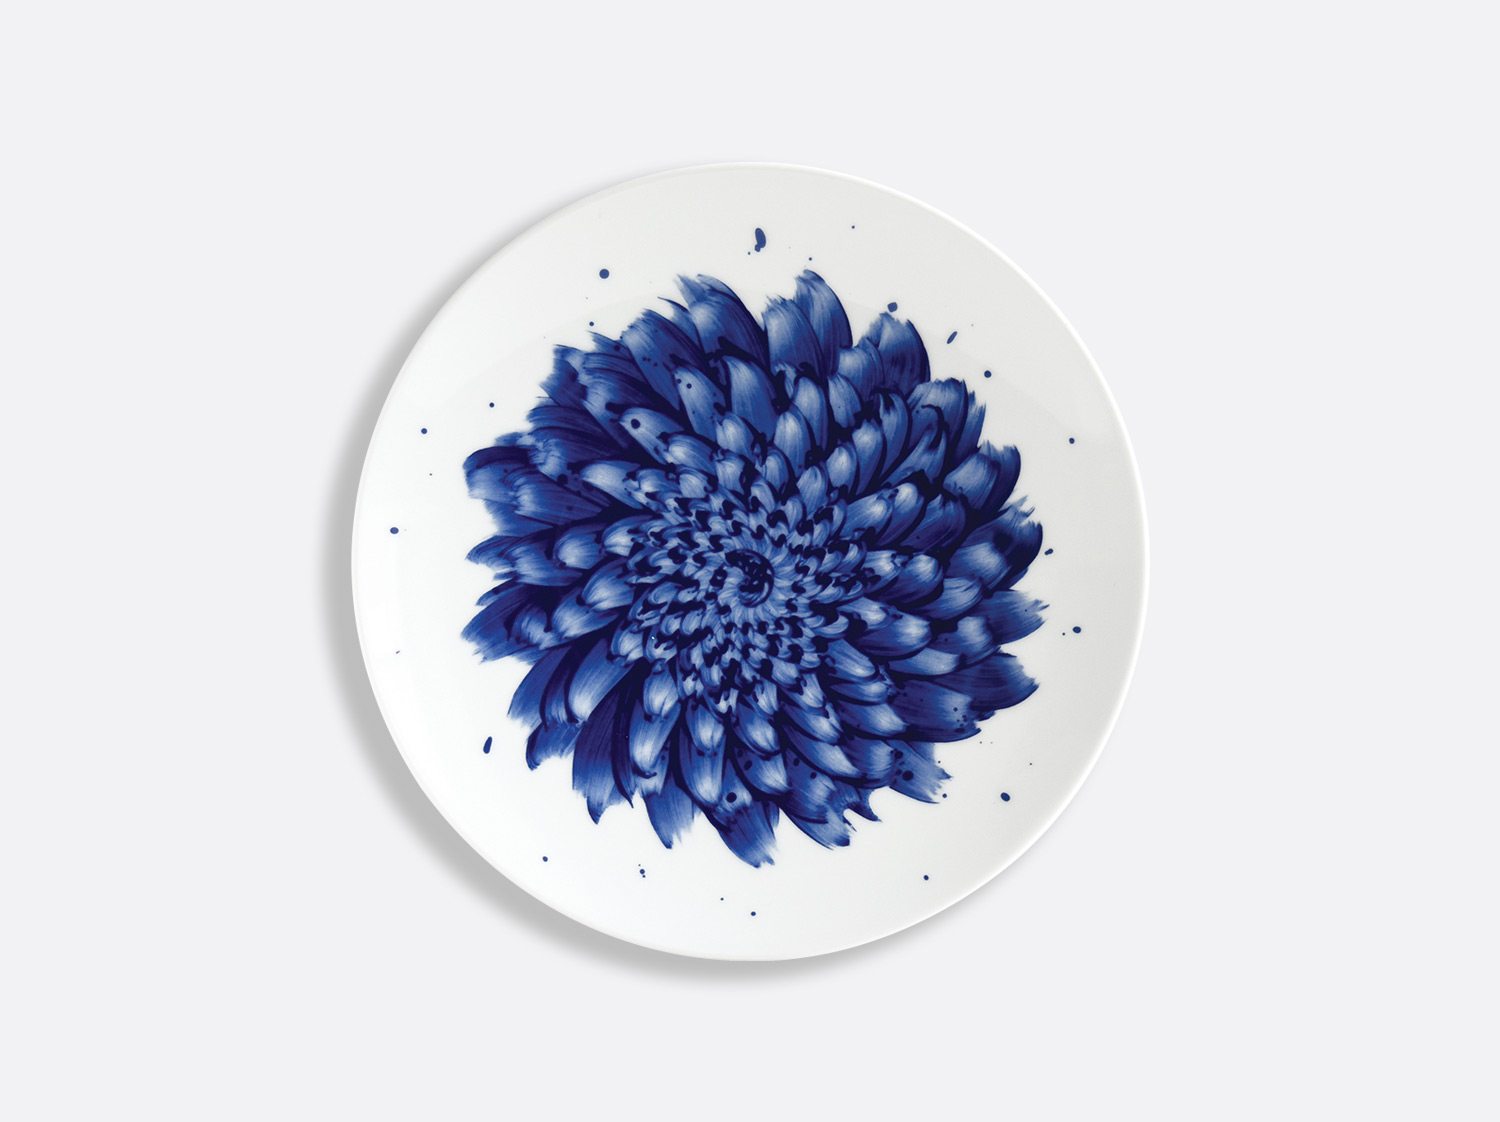 Assiette coupe 21 cm en porcelaine de la collection IN BLOOM - Zemer Peled Bernardaud